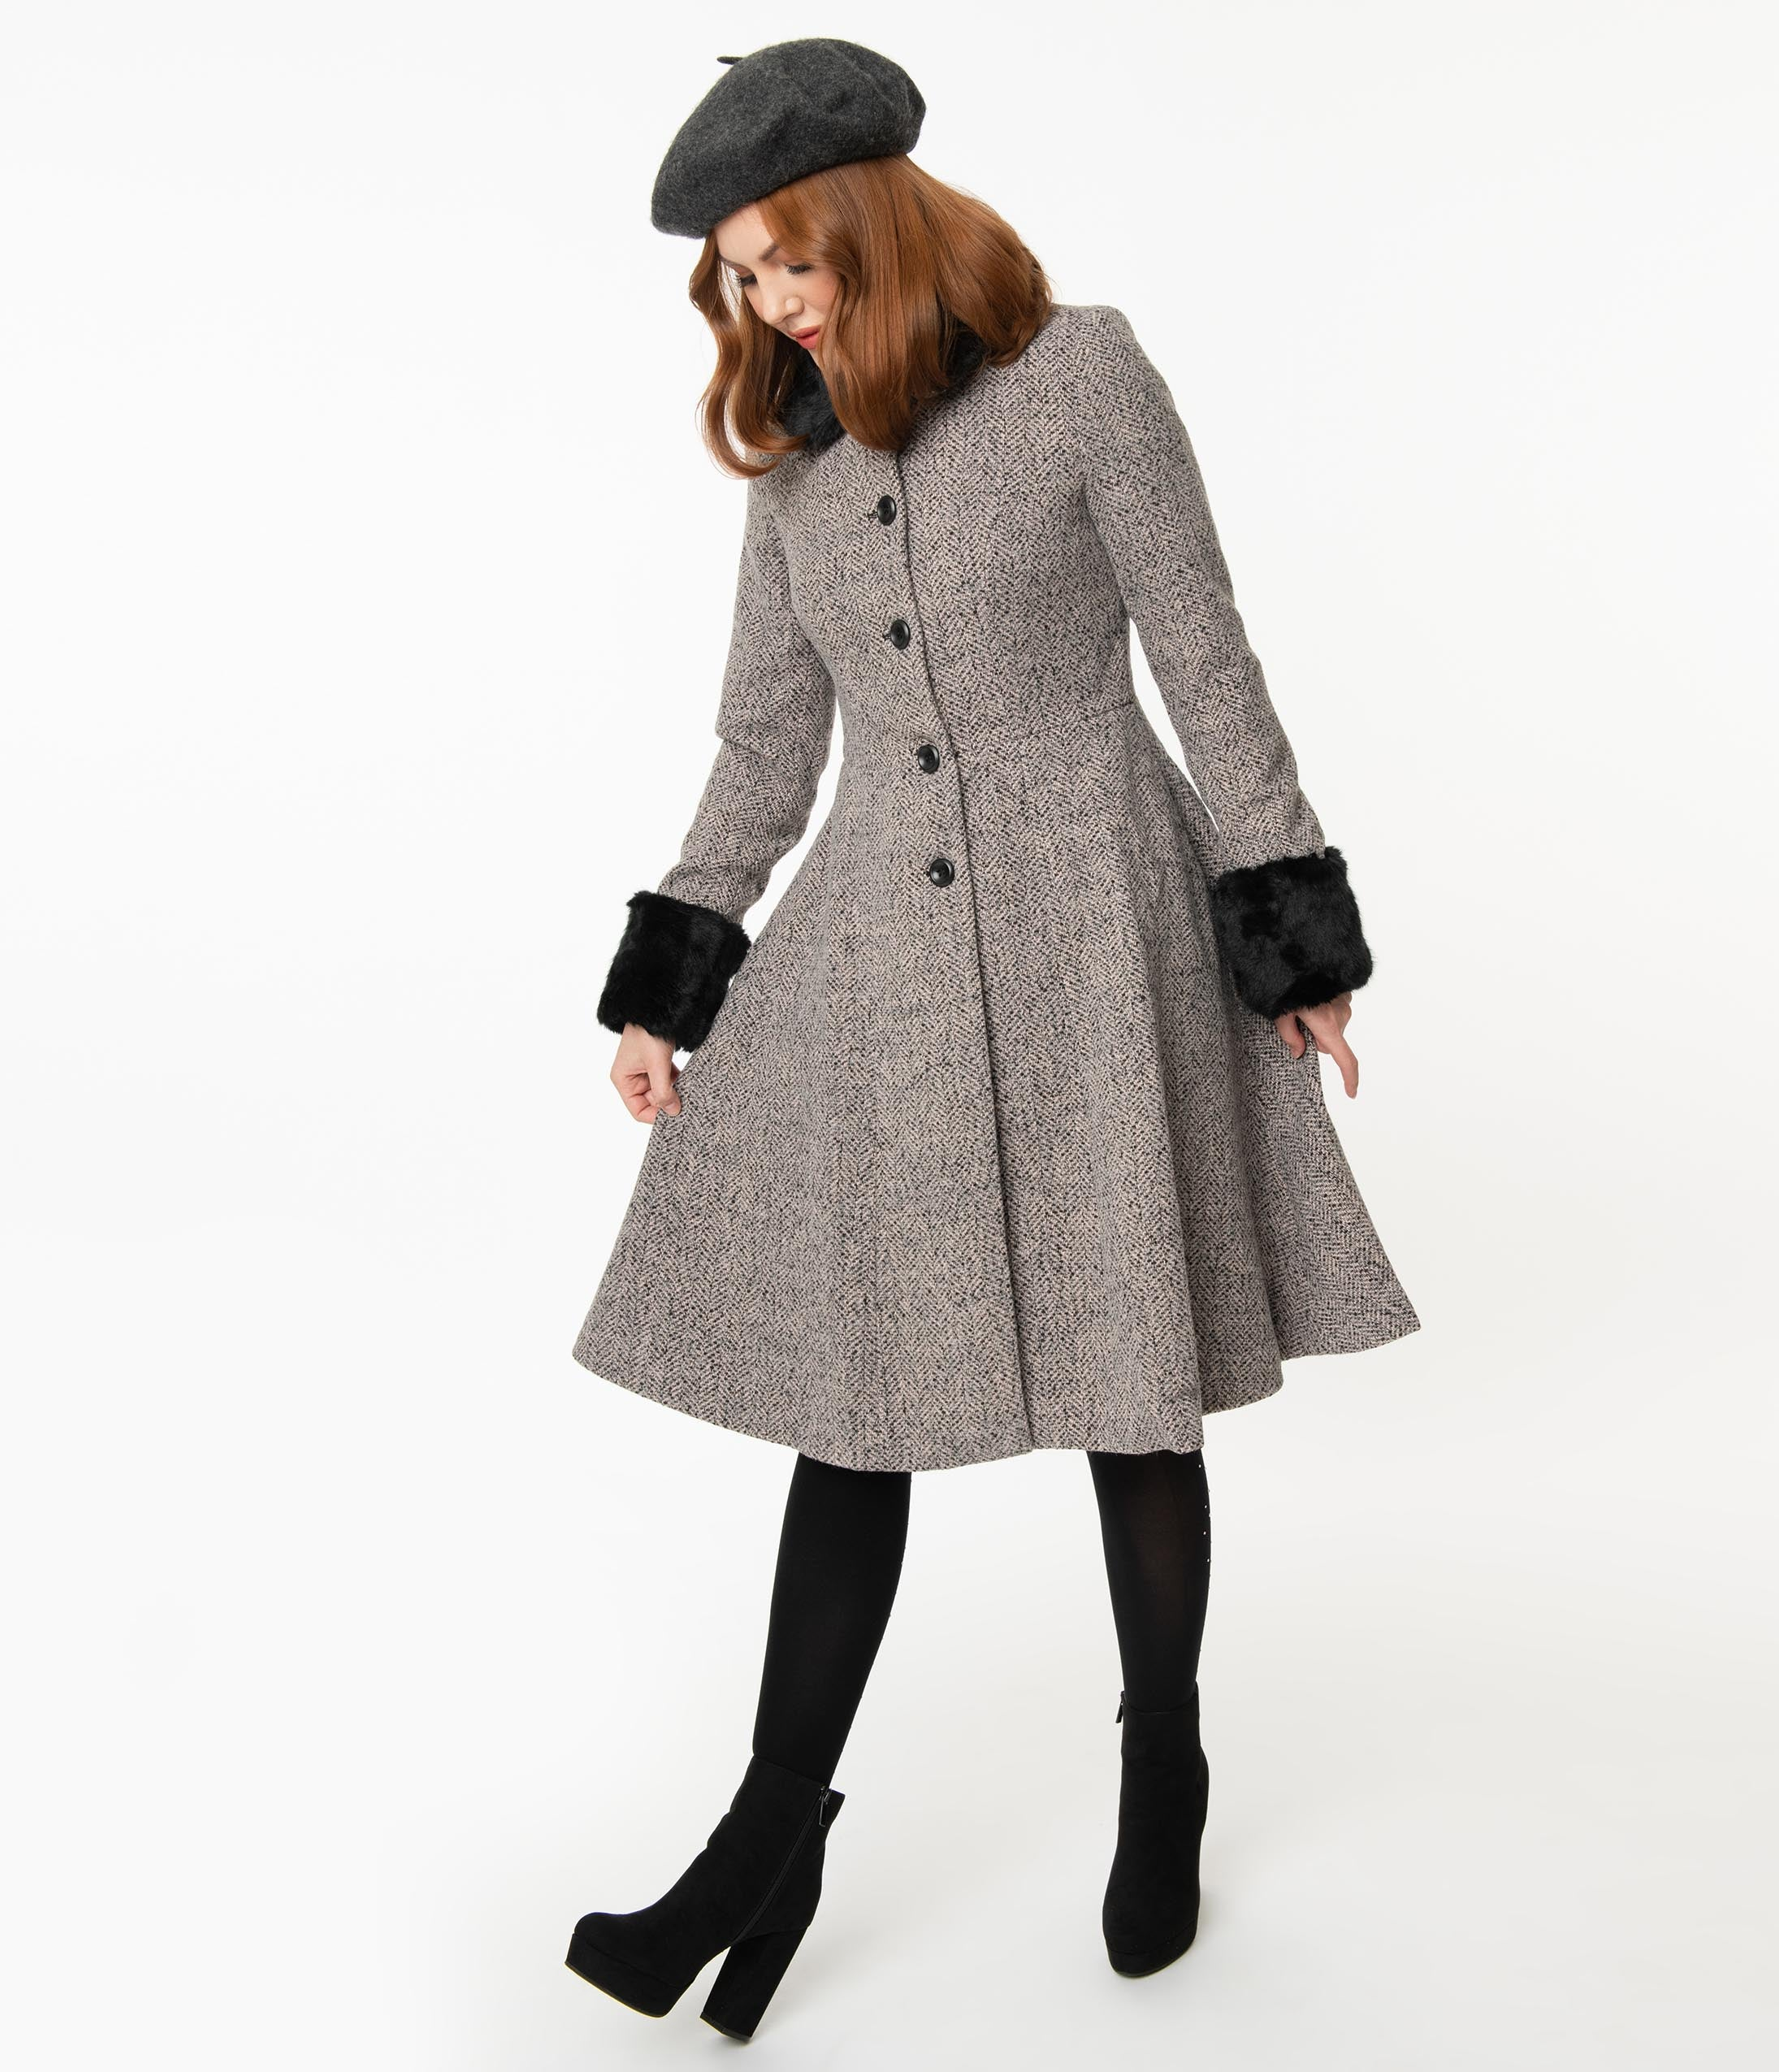 1950s Jackets, Coats, Bolero | Swing, Pin Up, Rockabilly Voodoo Vixen 1950S Grey Tweed Louisa May Coat $148.00 AT vintagedancer.com